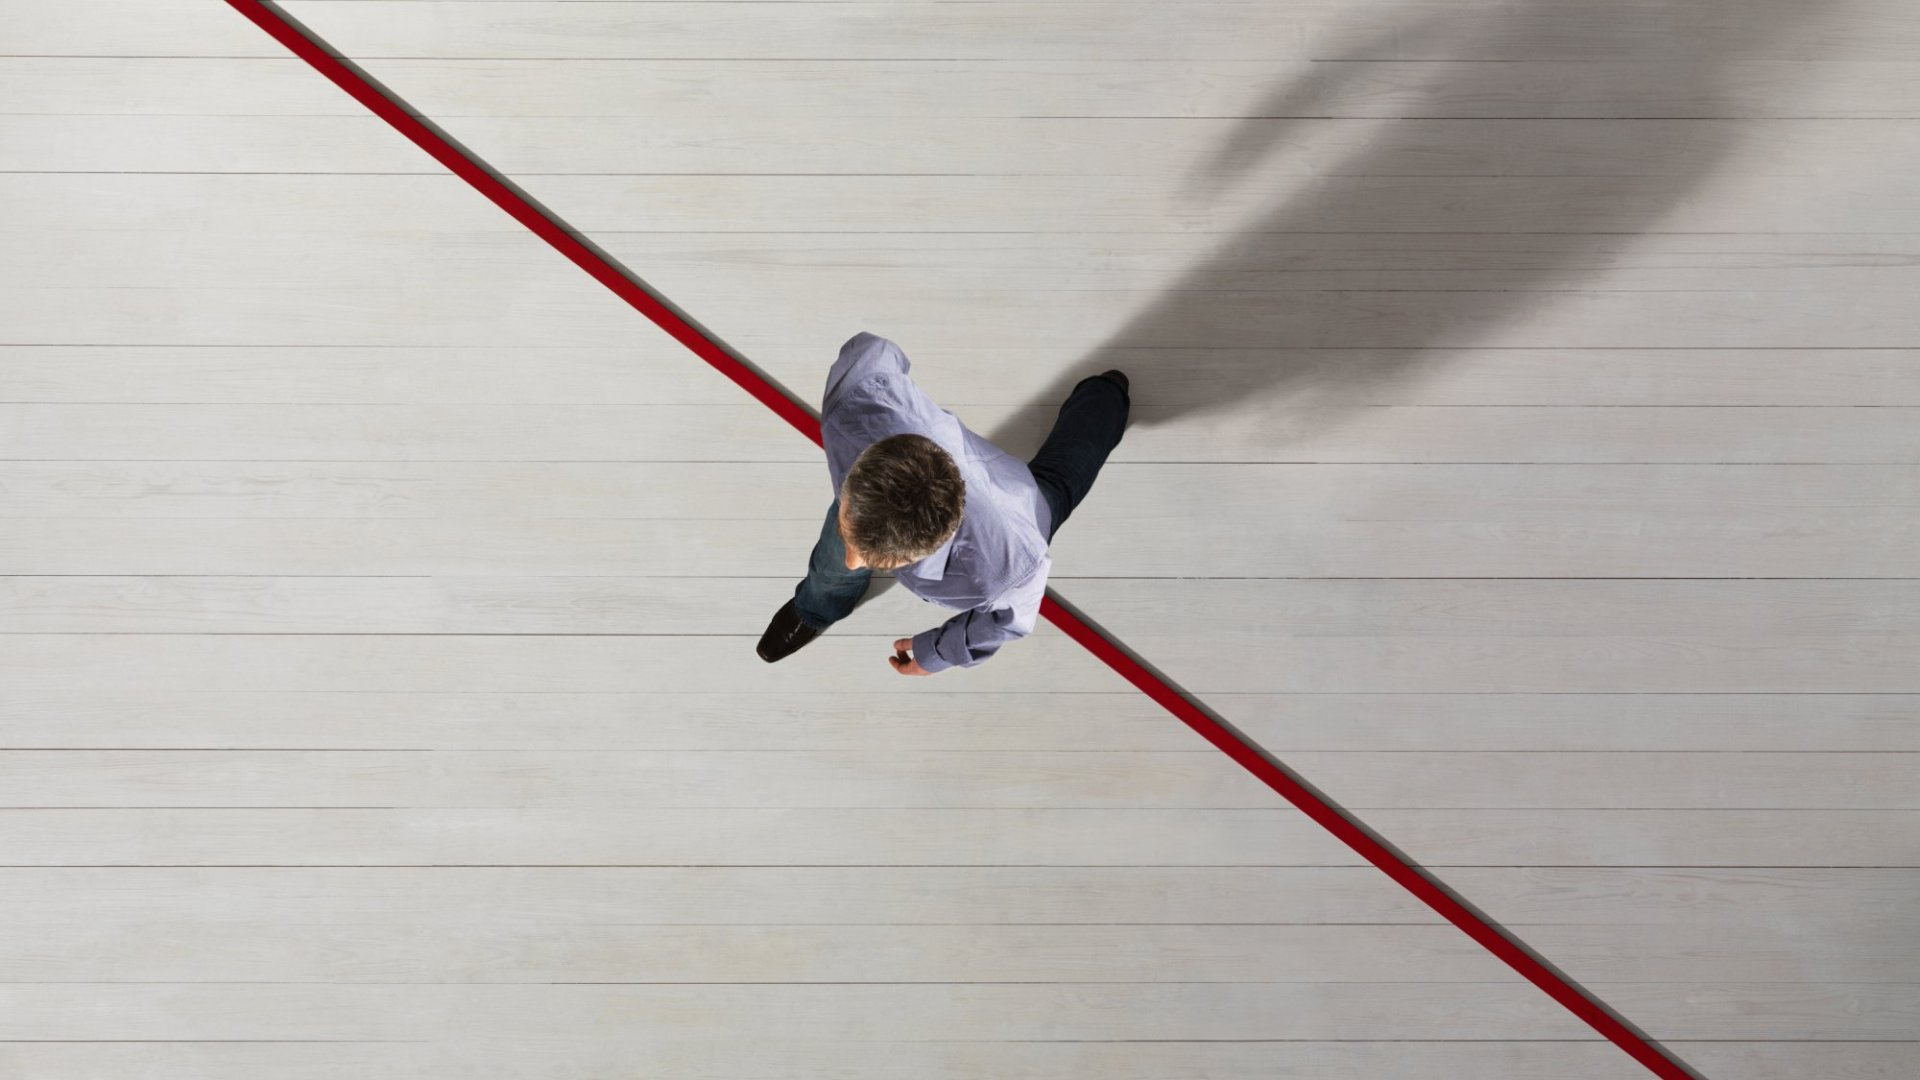 The Most Successful Leaders Make These 4 Boundaries Clear